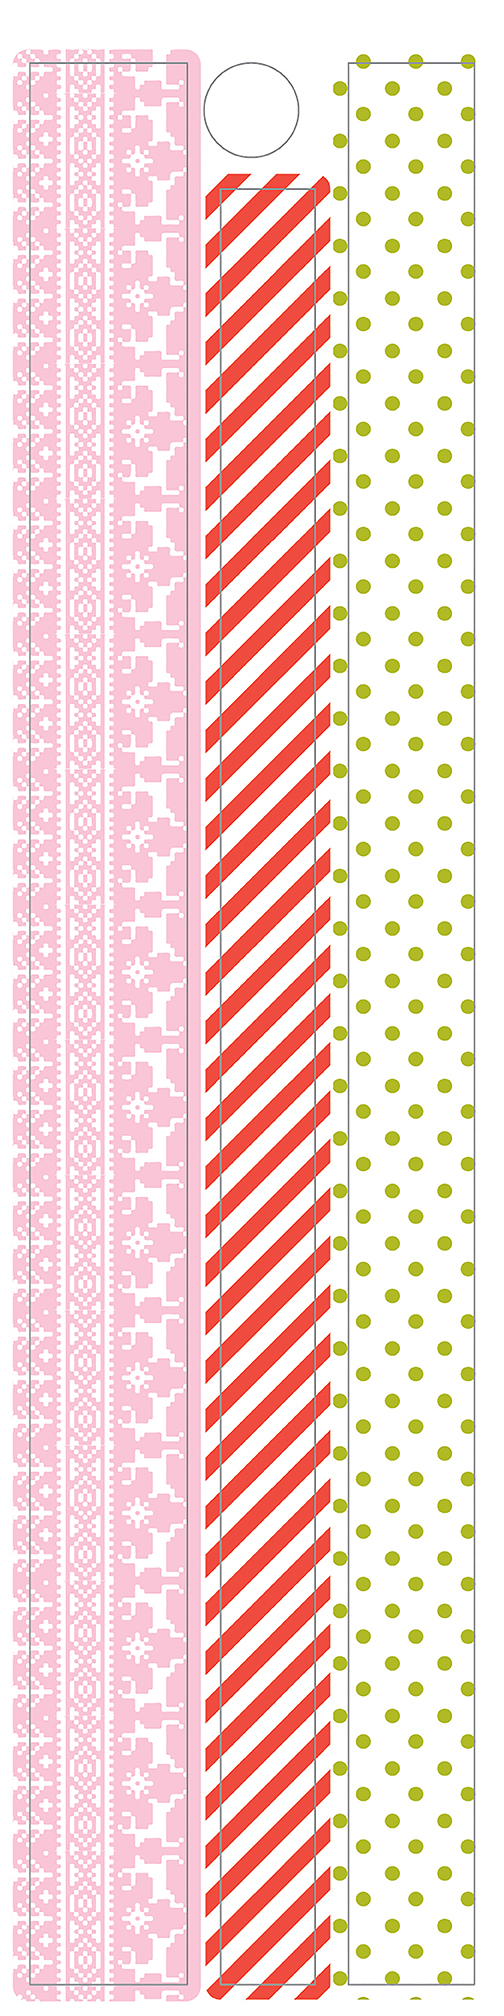 1329_WASHI_STICKERS-03